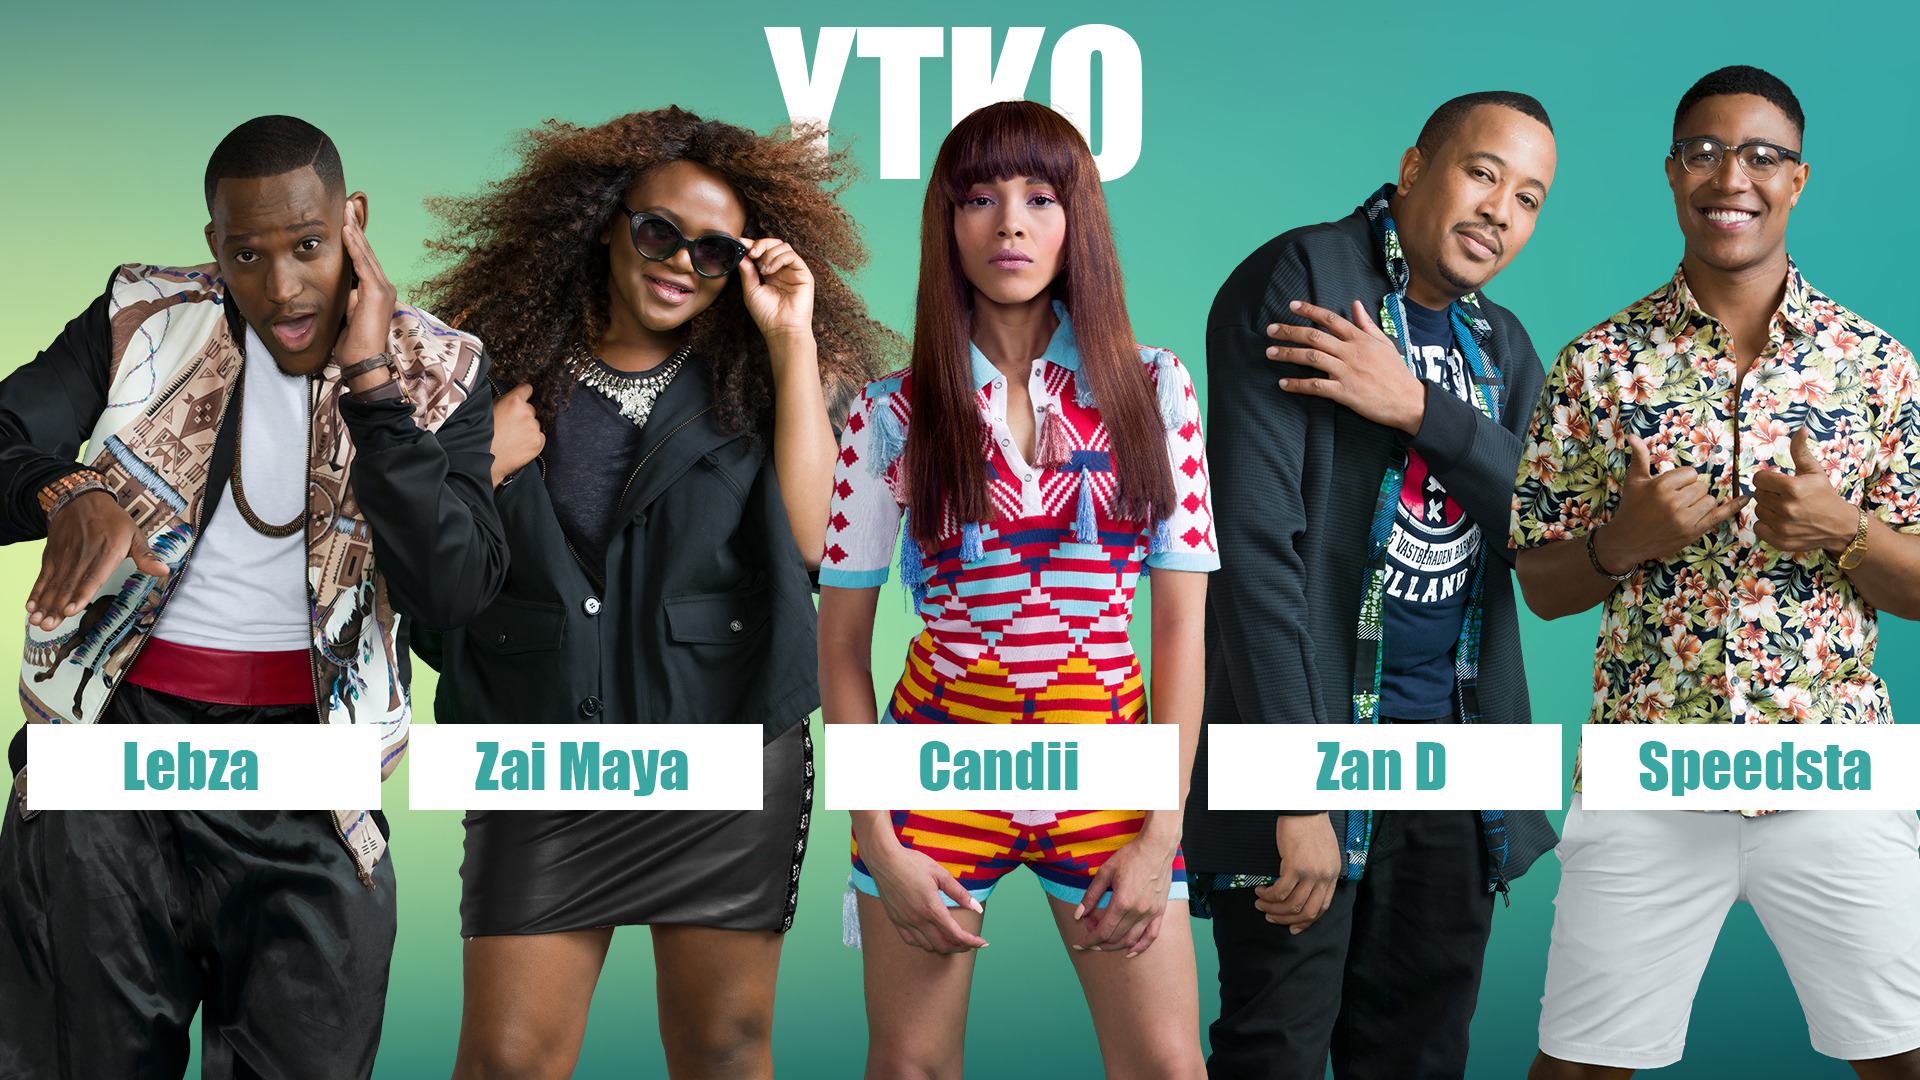 YFM TURNS UP THE VOLUME WITH A RE-UP